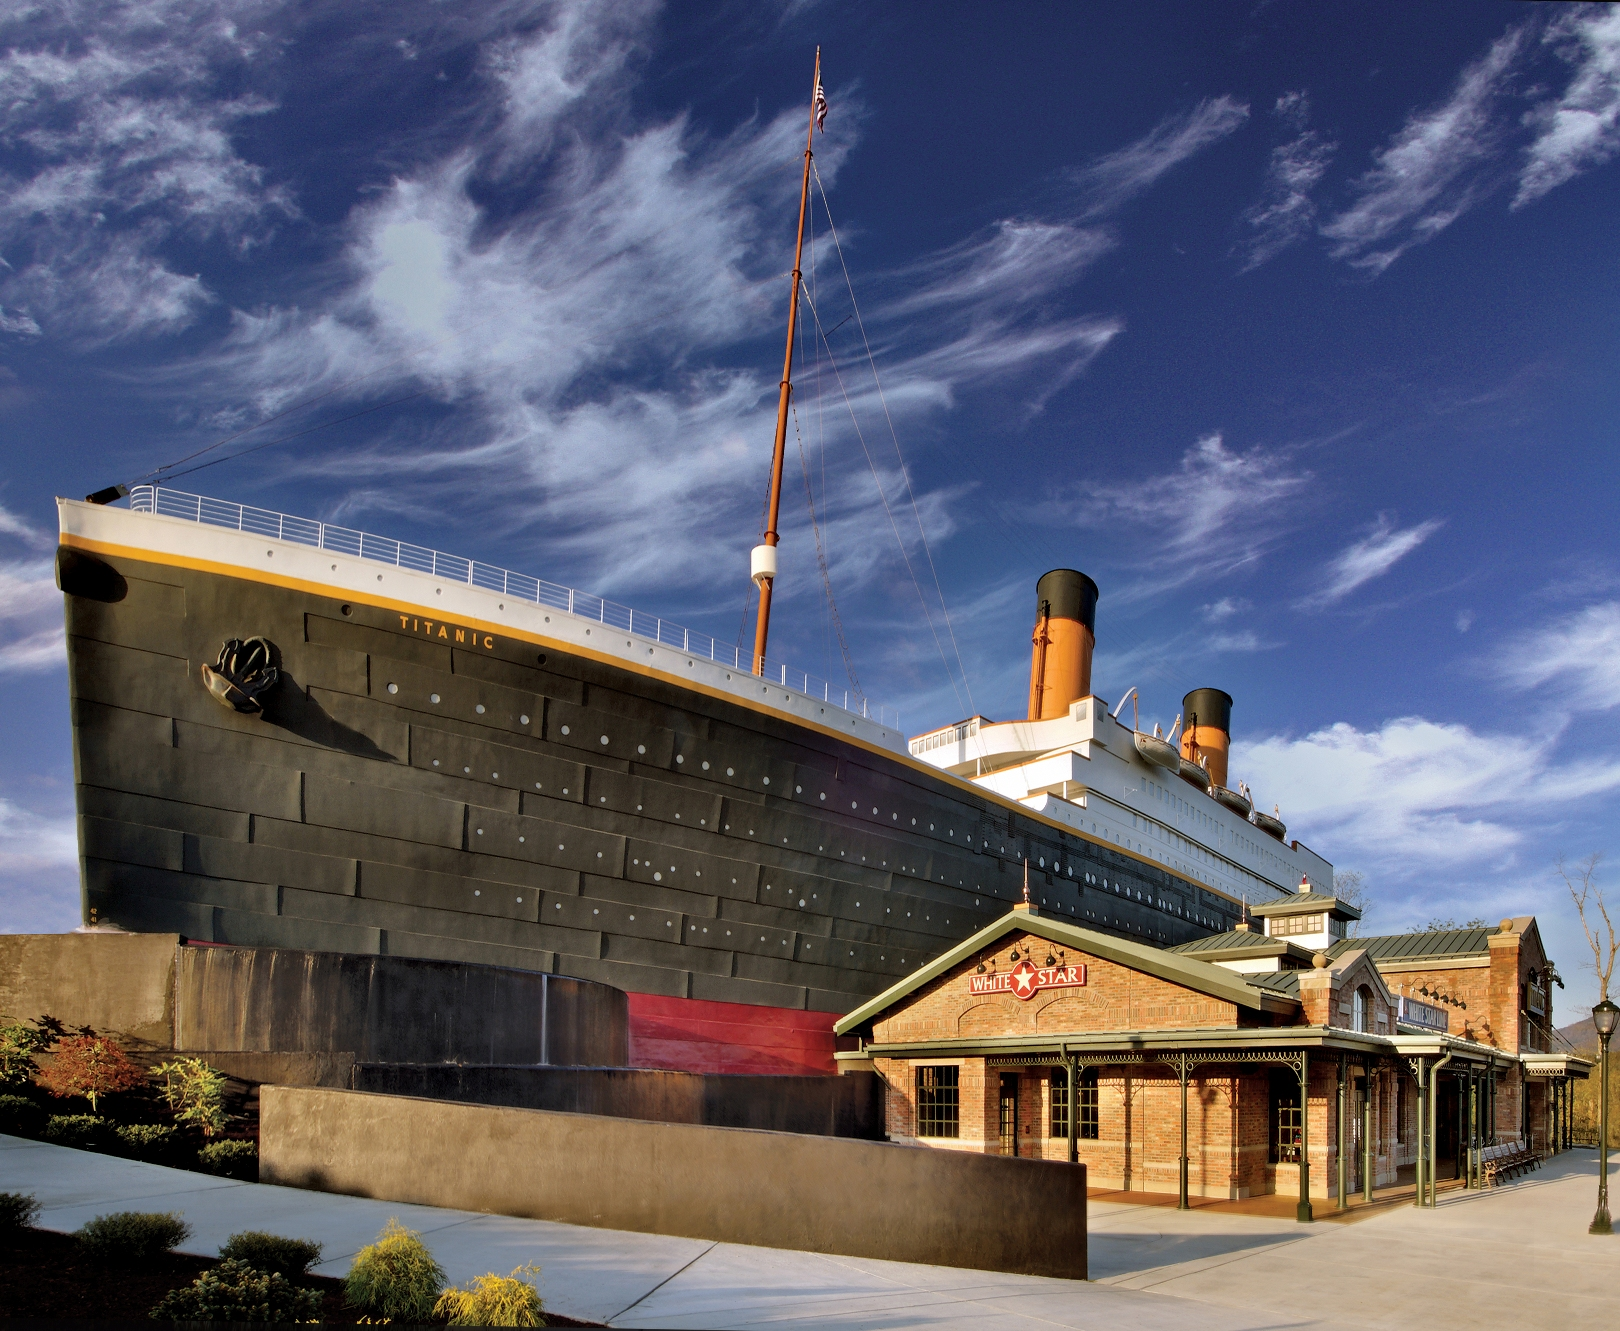 Titanic Museum Attractions GoingPlacesNearAndFars Blog - Ship museums in us